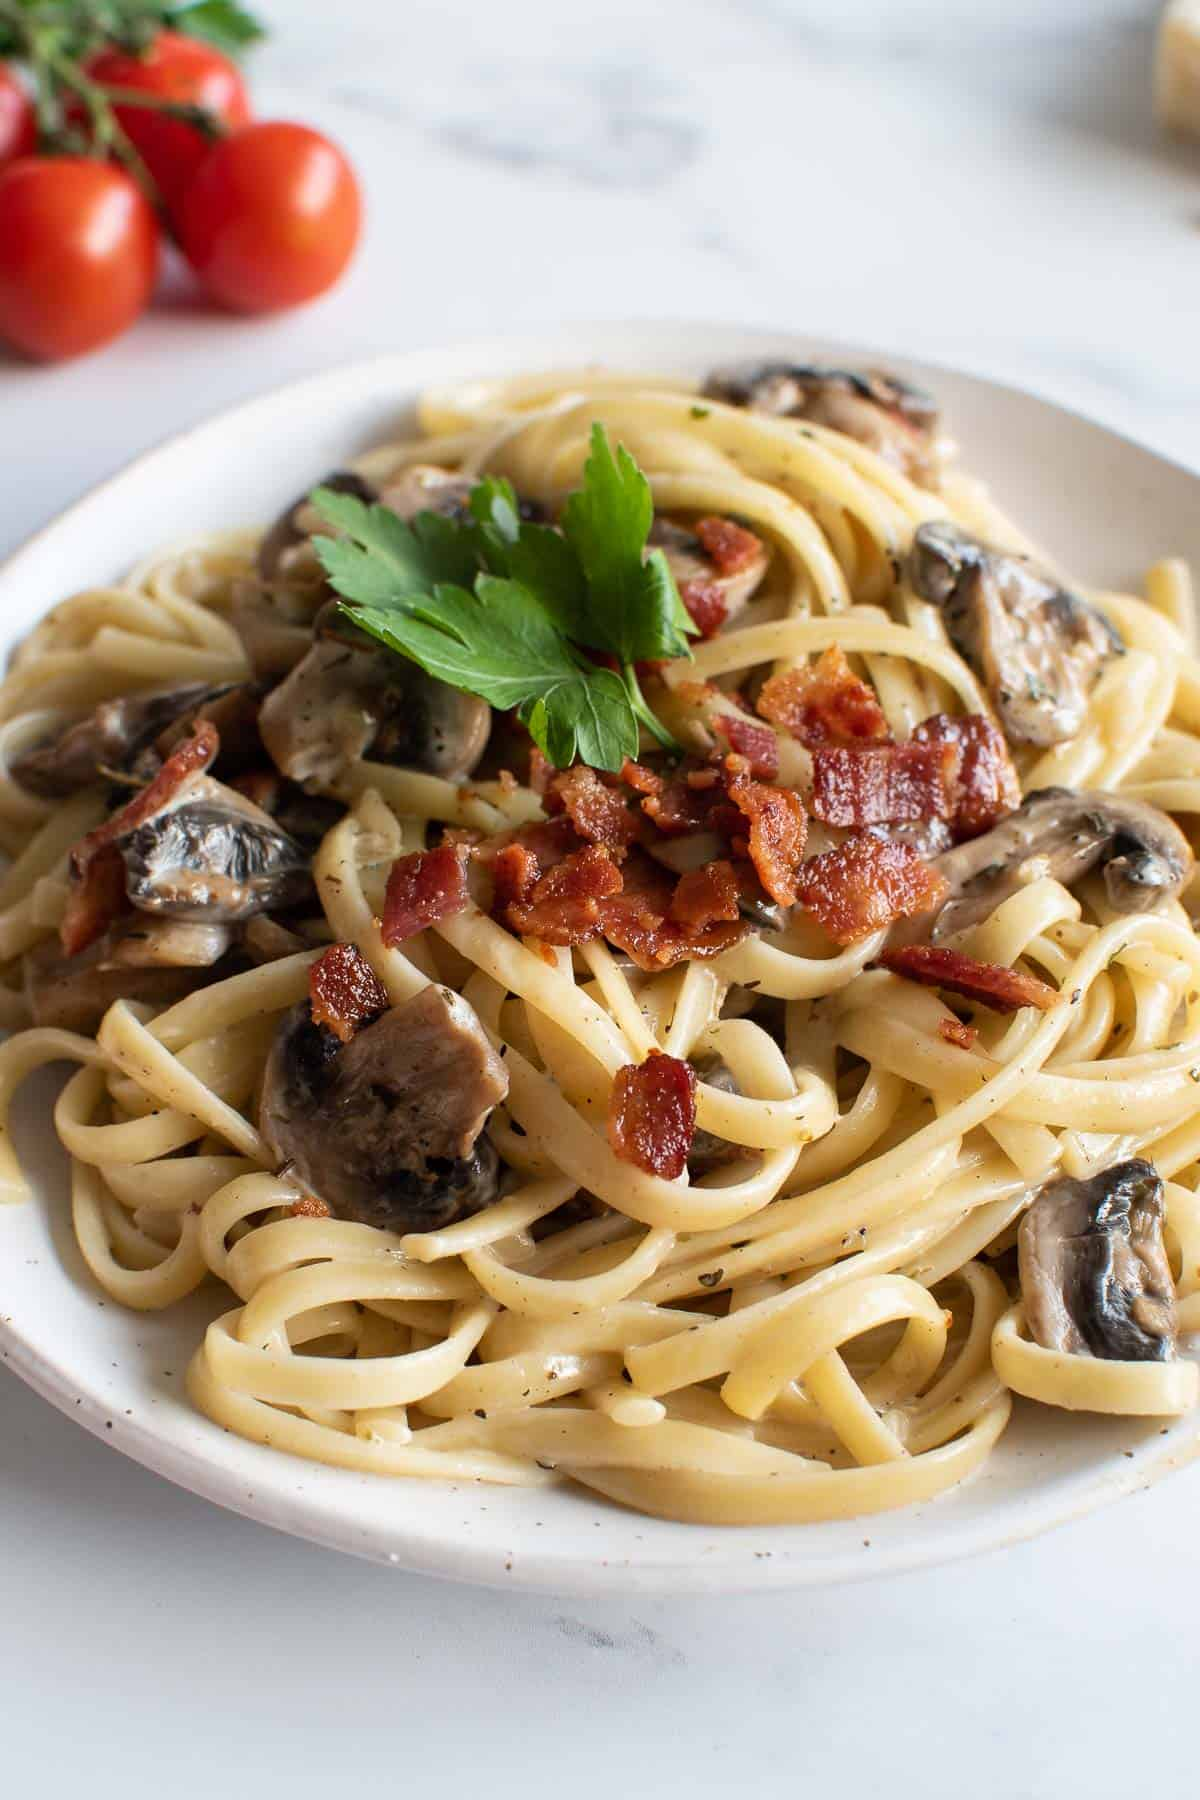 Linguine in a creamy sauce with bacon and mushrooms.